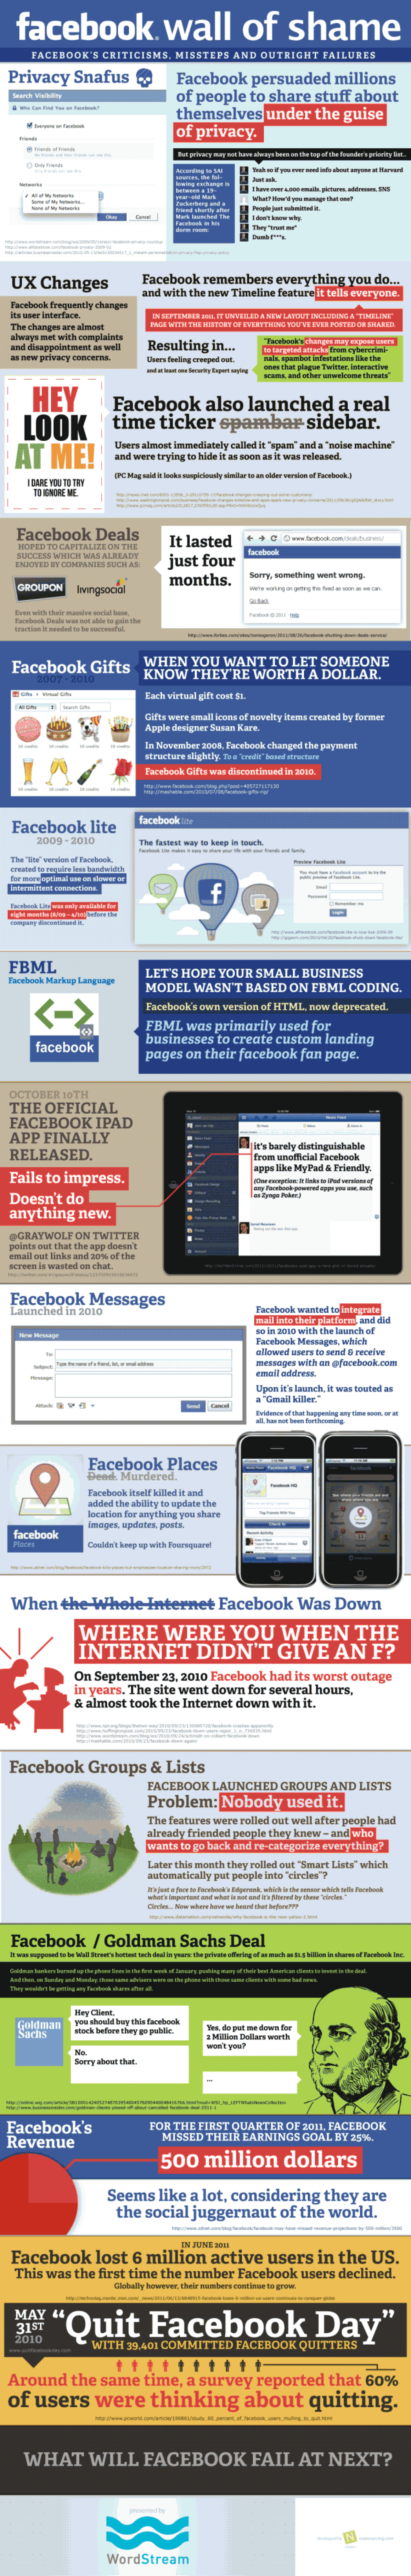 Facebook's Wall of Shame Infographic